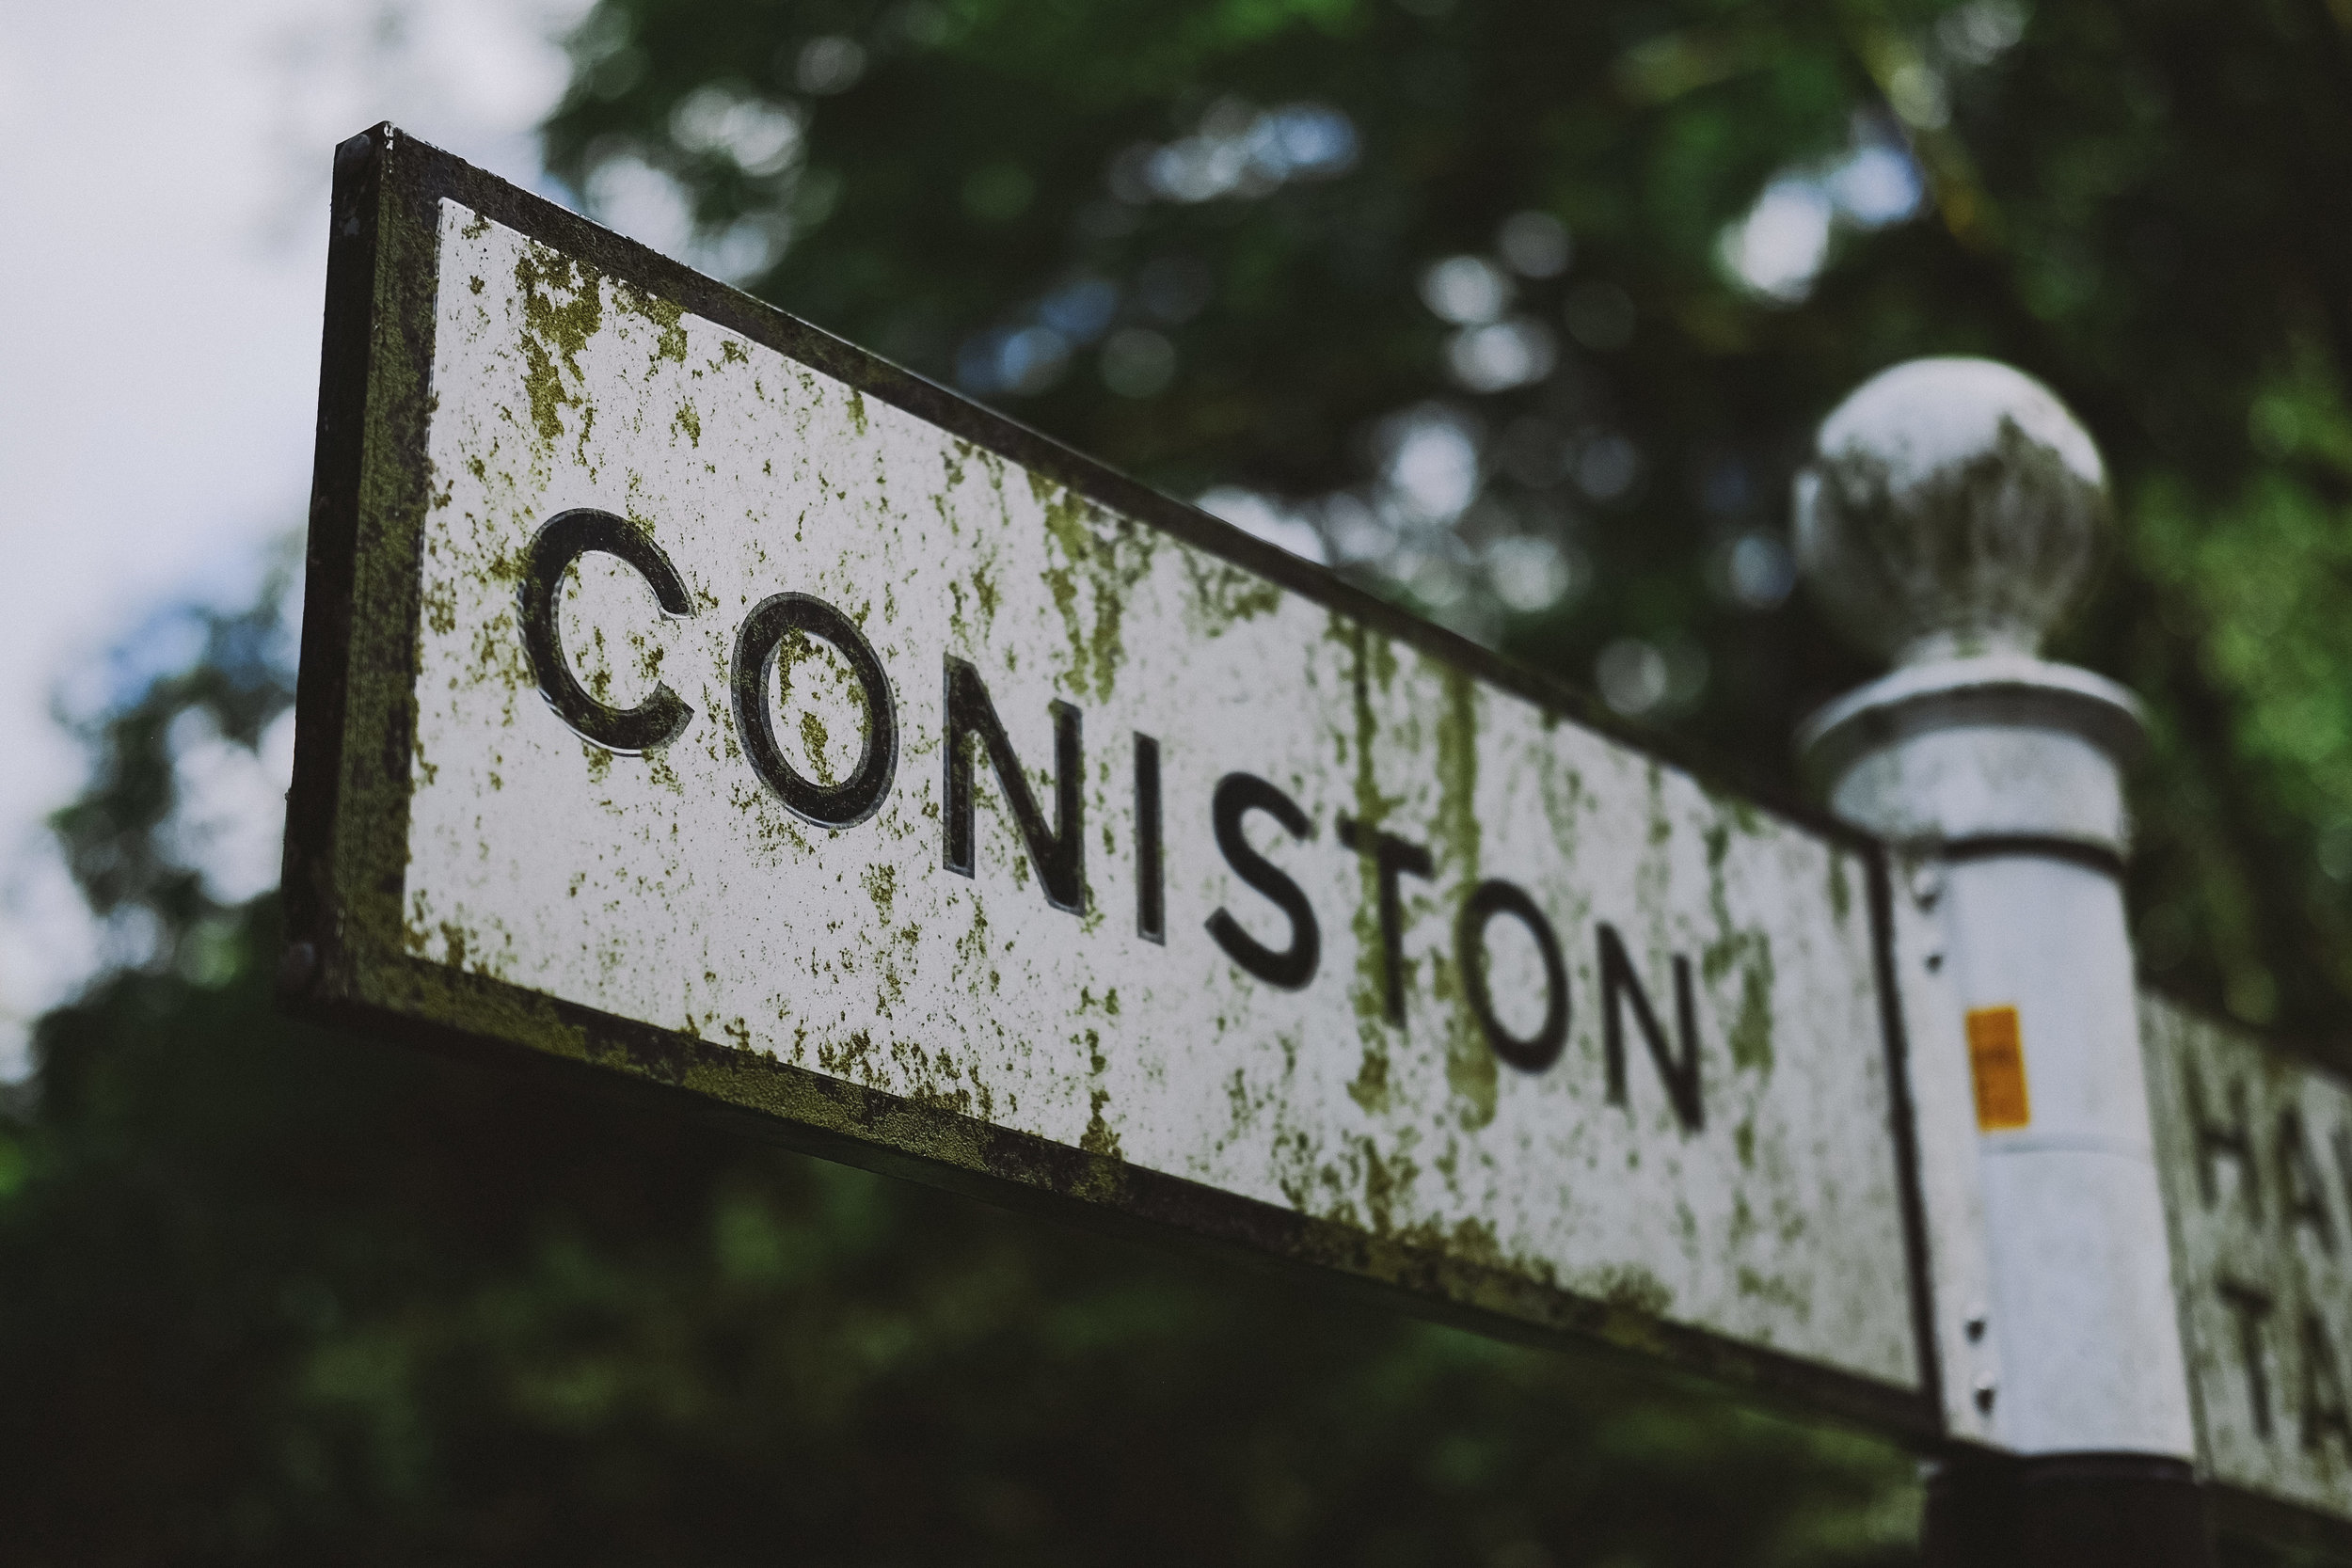 The signpost for Coniston at Julia and Darren's Lake District wedding by Barry Forshaw